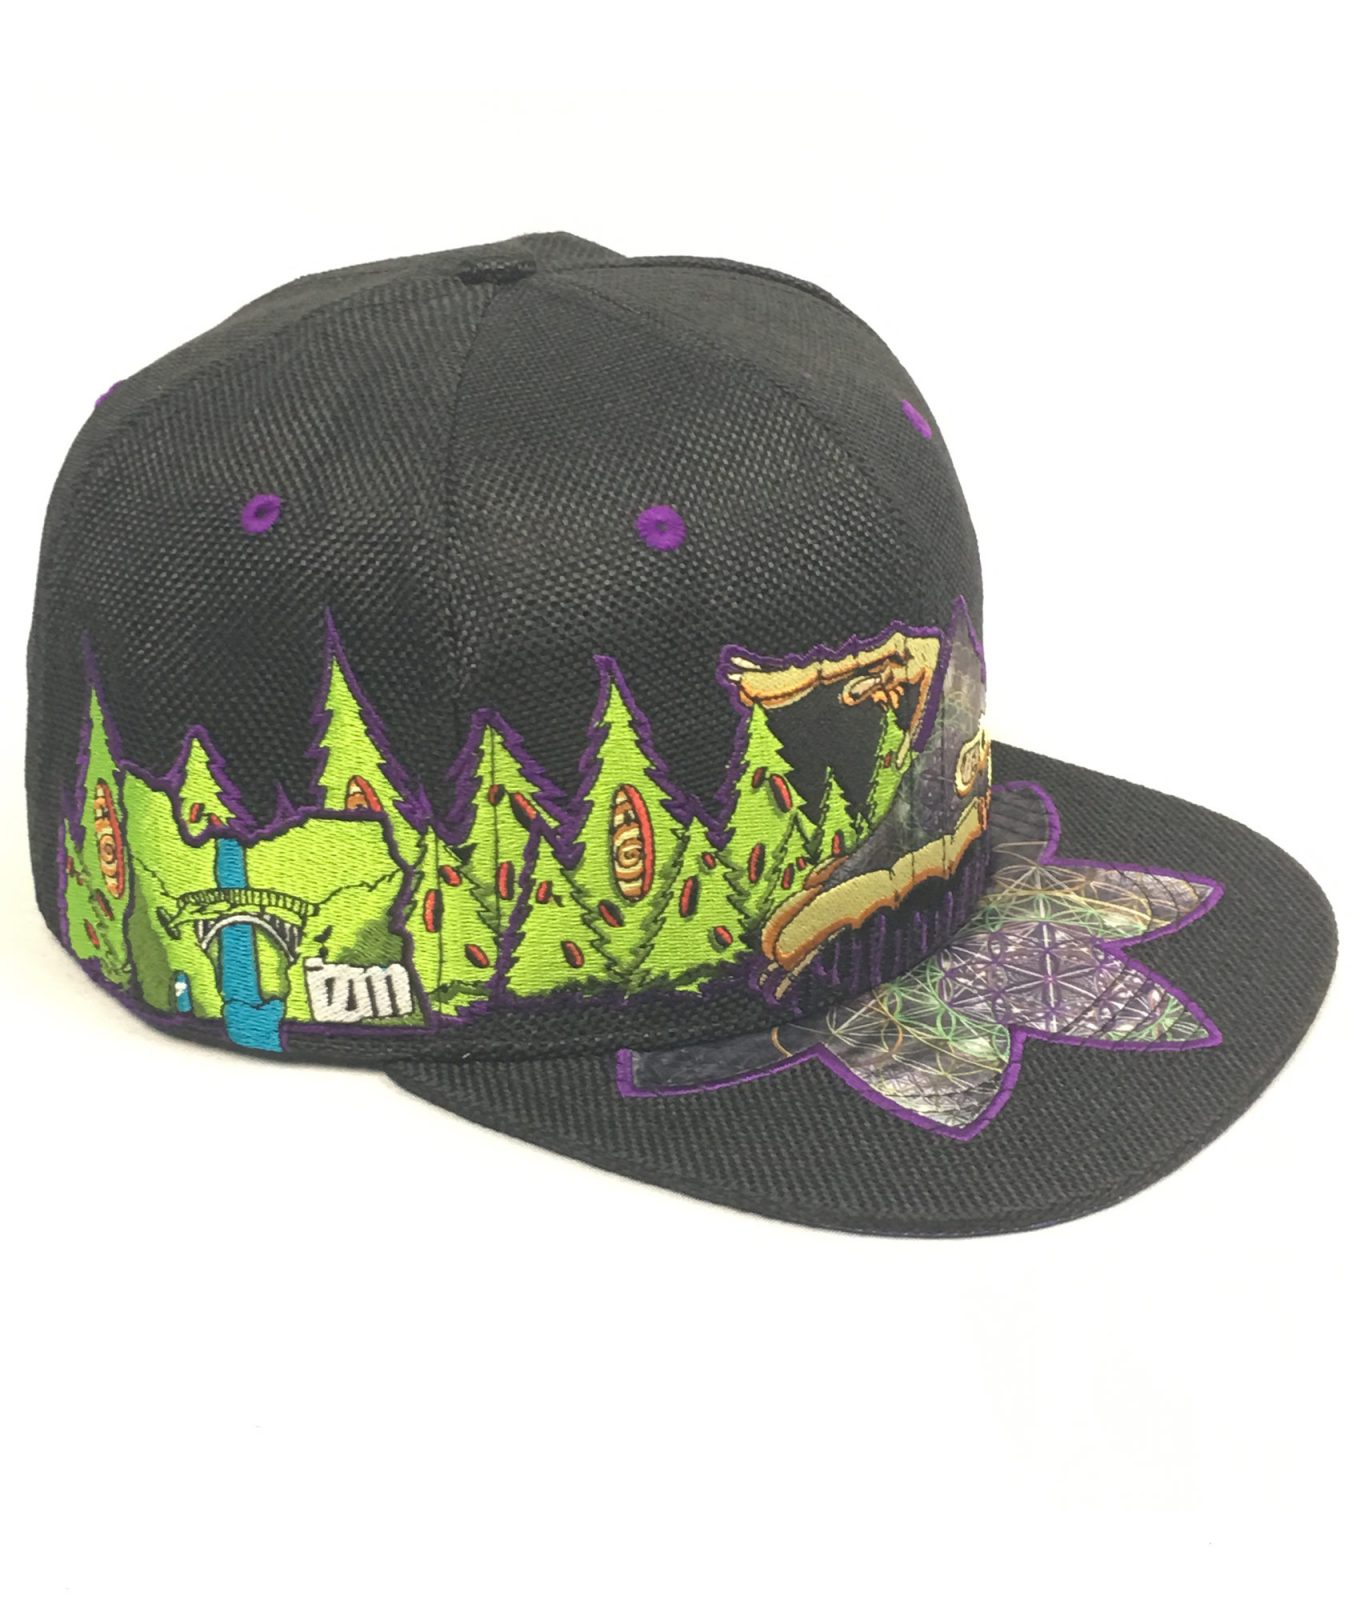 oregonizm-product-hat-waterfall-2